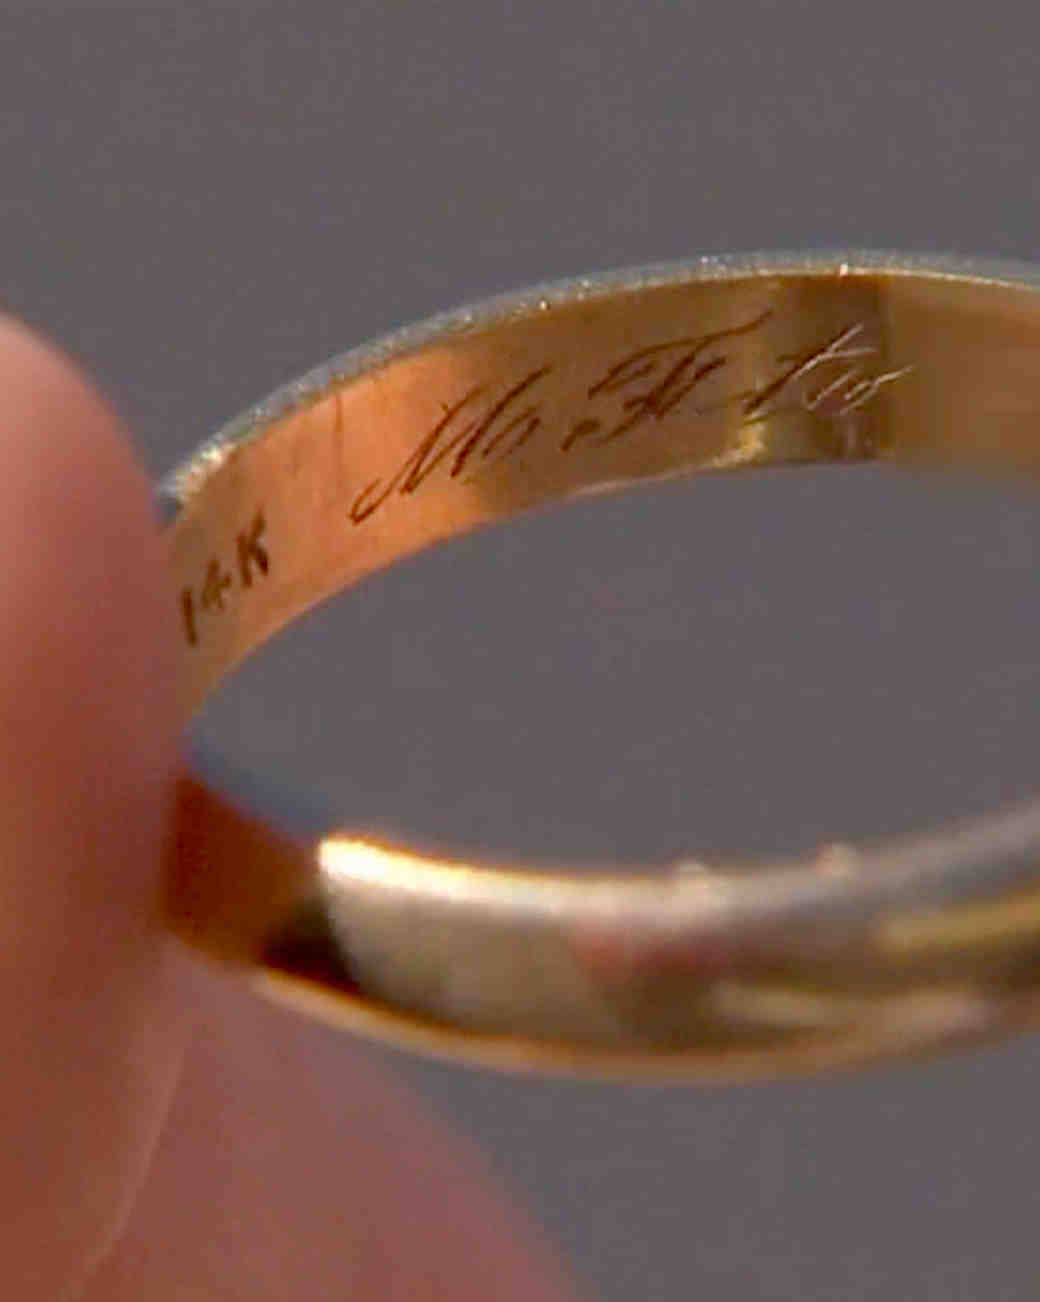 Missing Wedding Ring Mystery—Help Find the Owner Who's About to Celebrate Their 60th Anniversary!